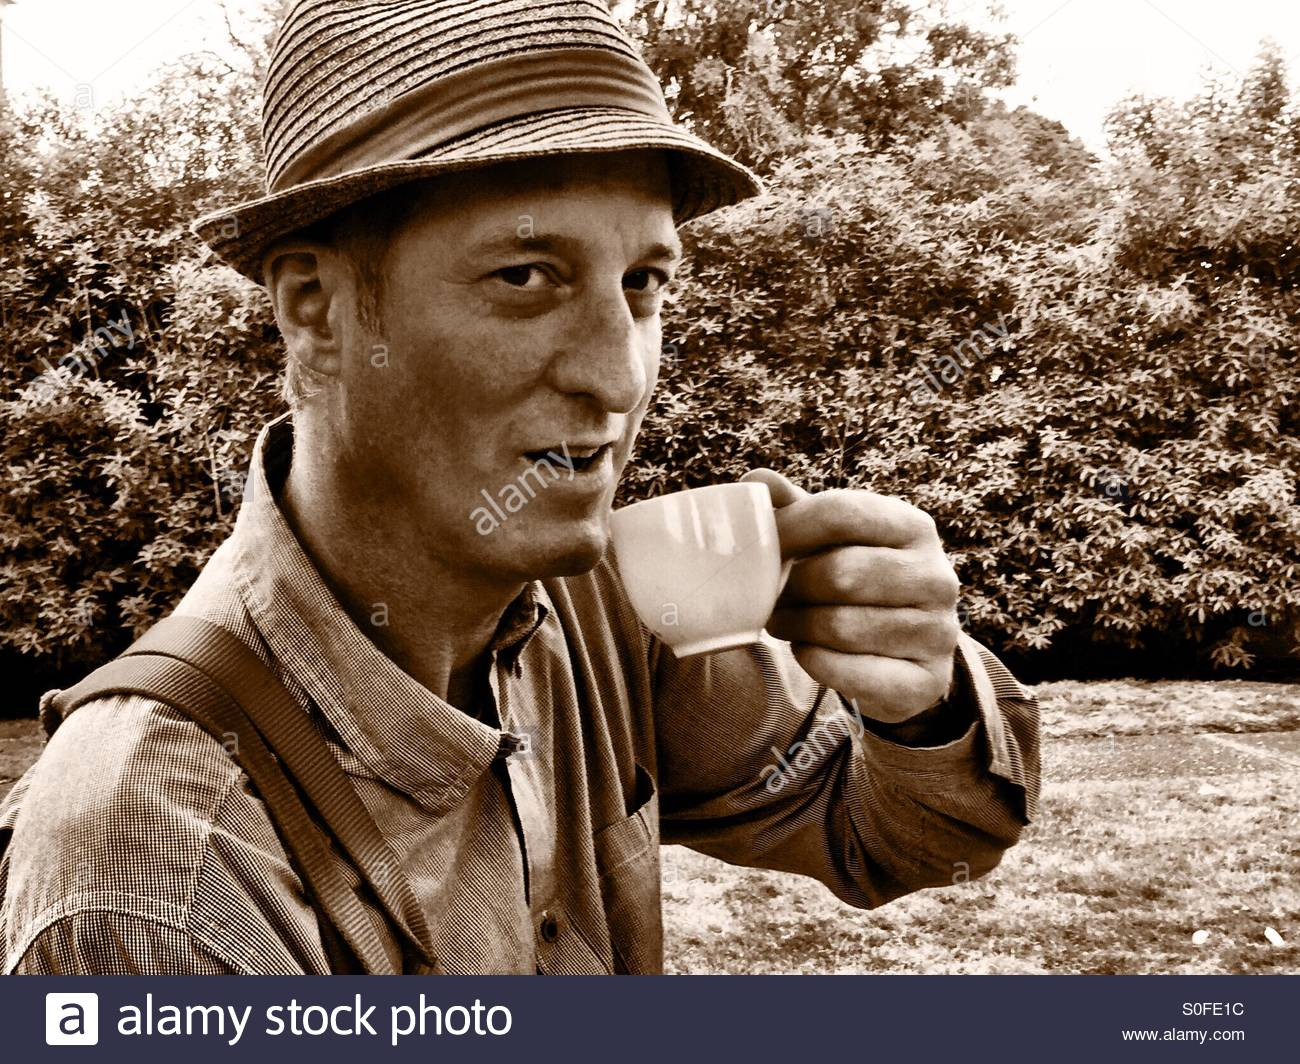 American man having a neighborly weekend chat over a cup of coffee in the backyard. Straw hat, suspenders. Sepia - Stock Image